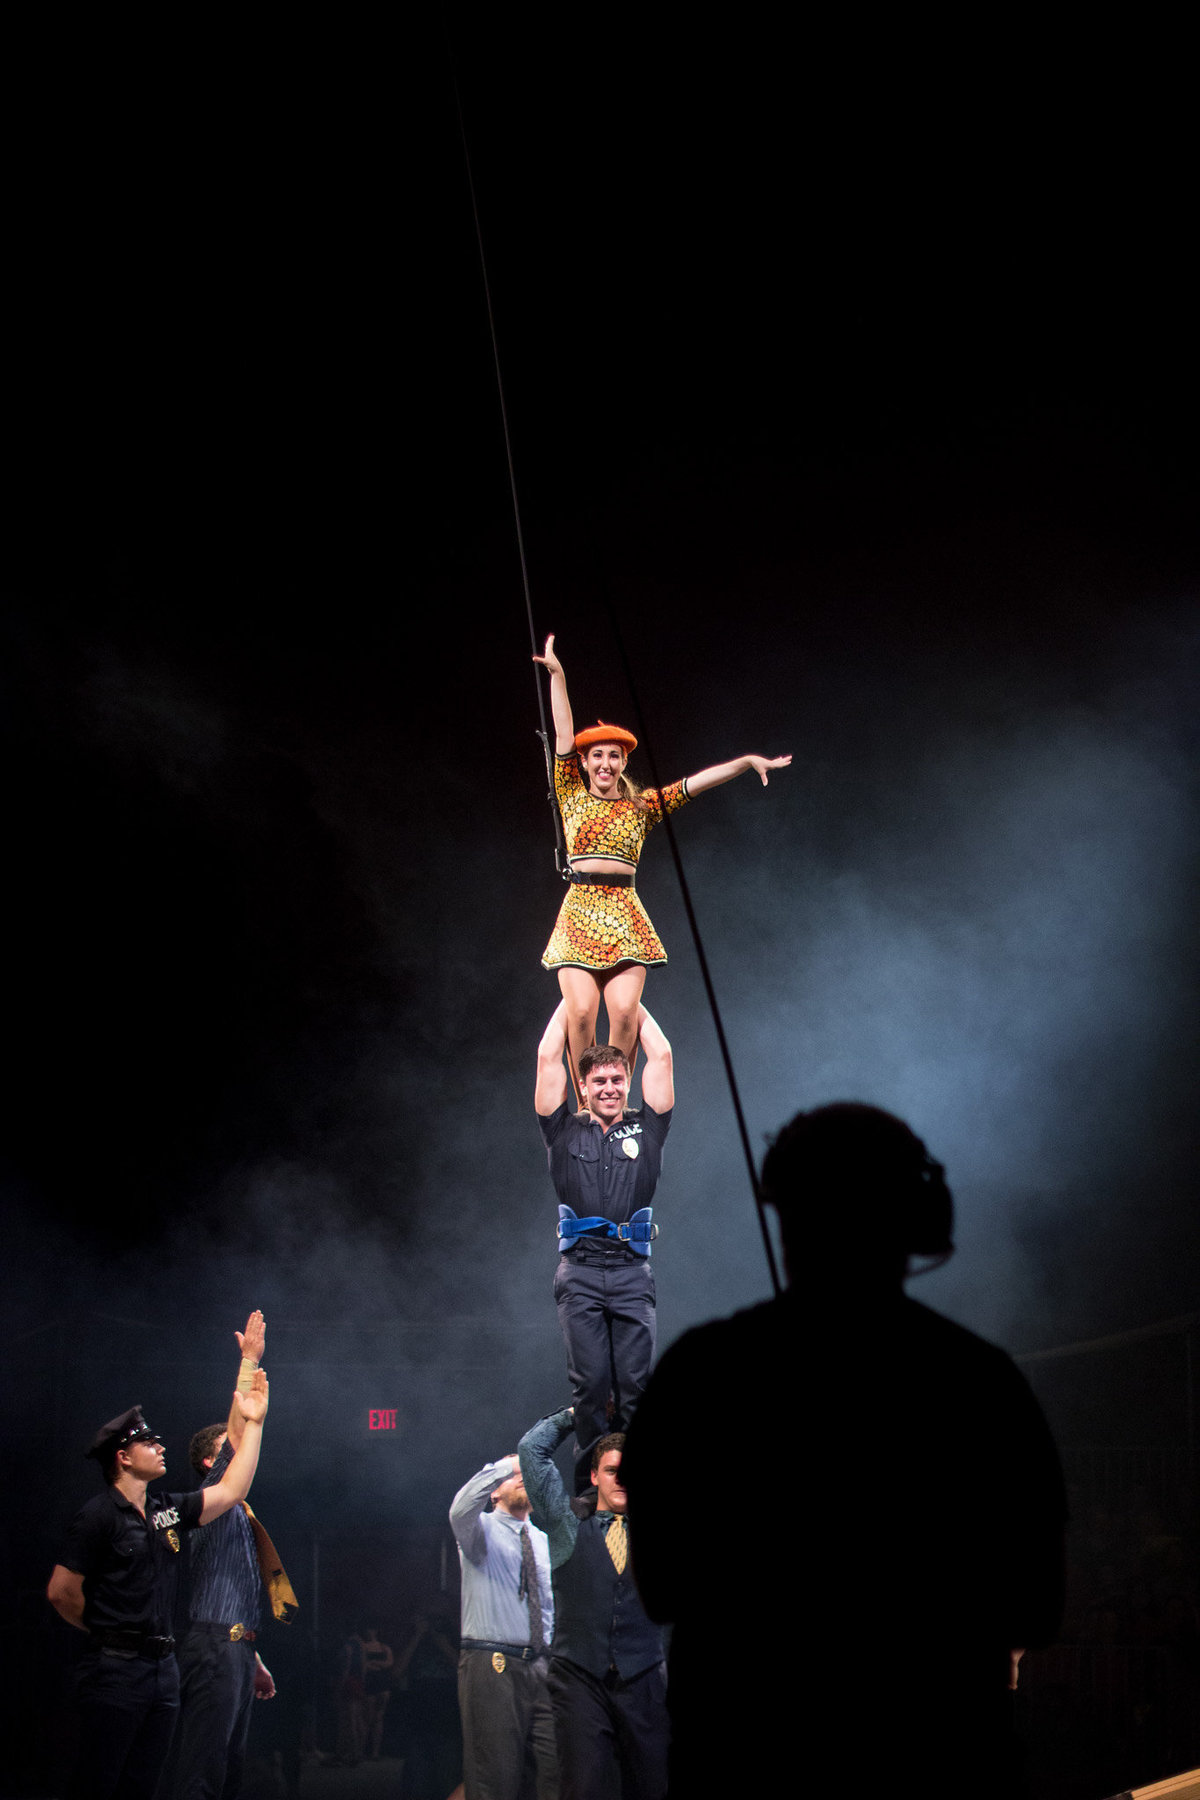 Florida_Circus_Photographer_010